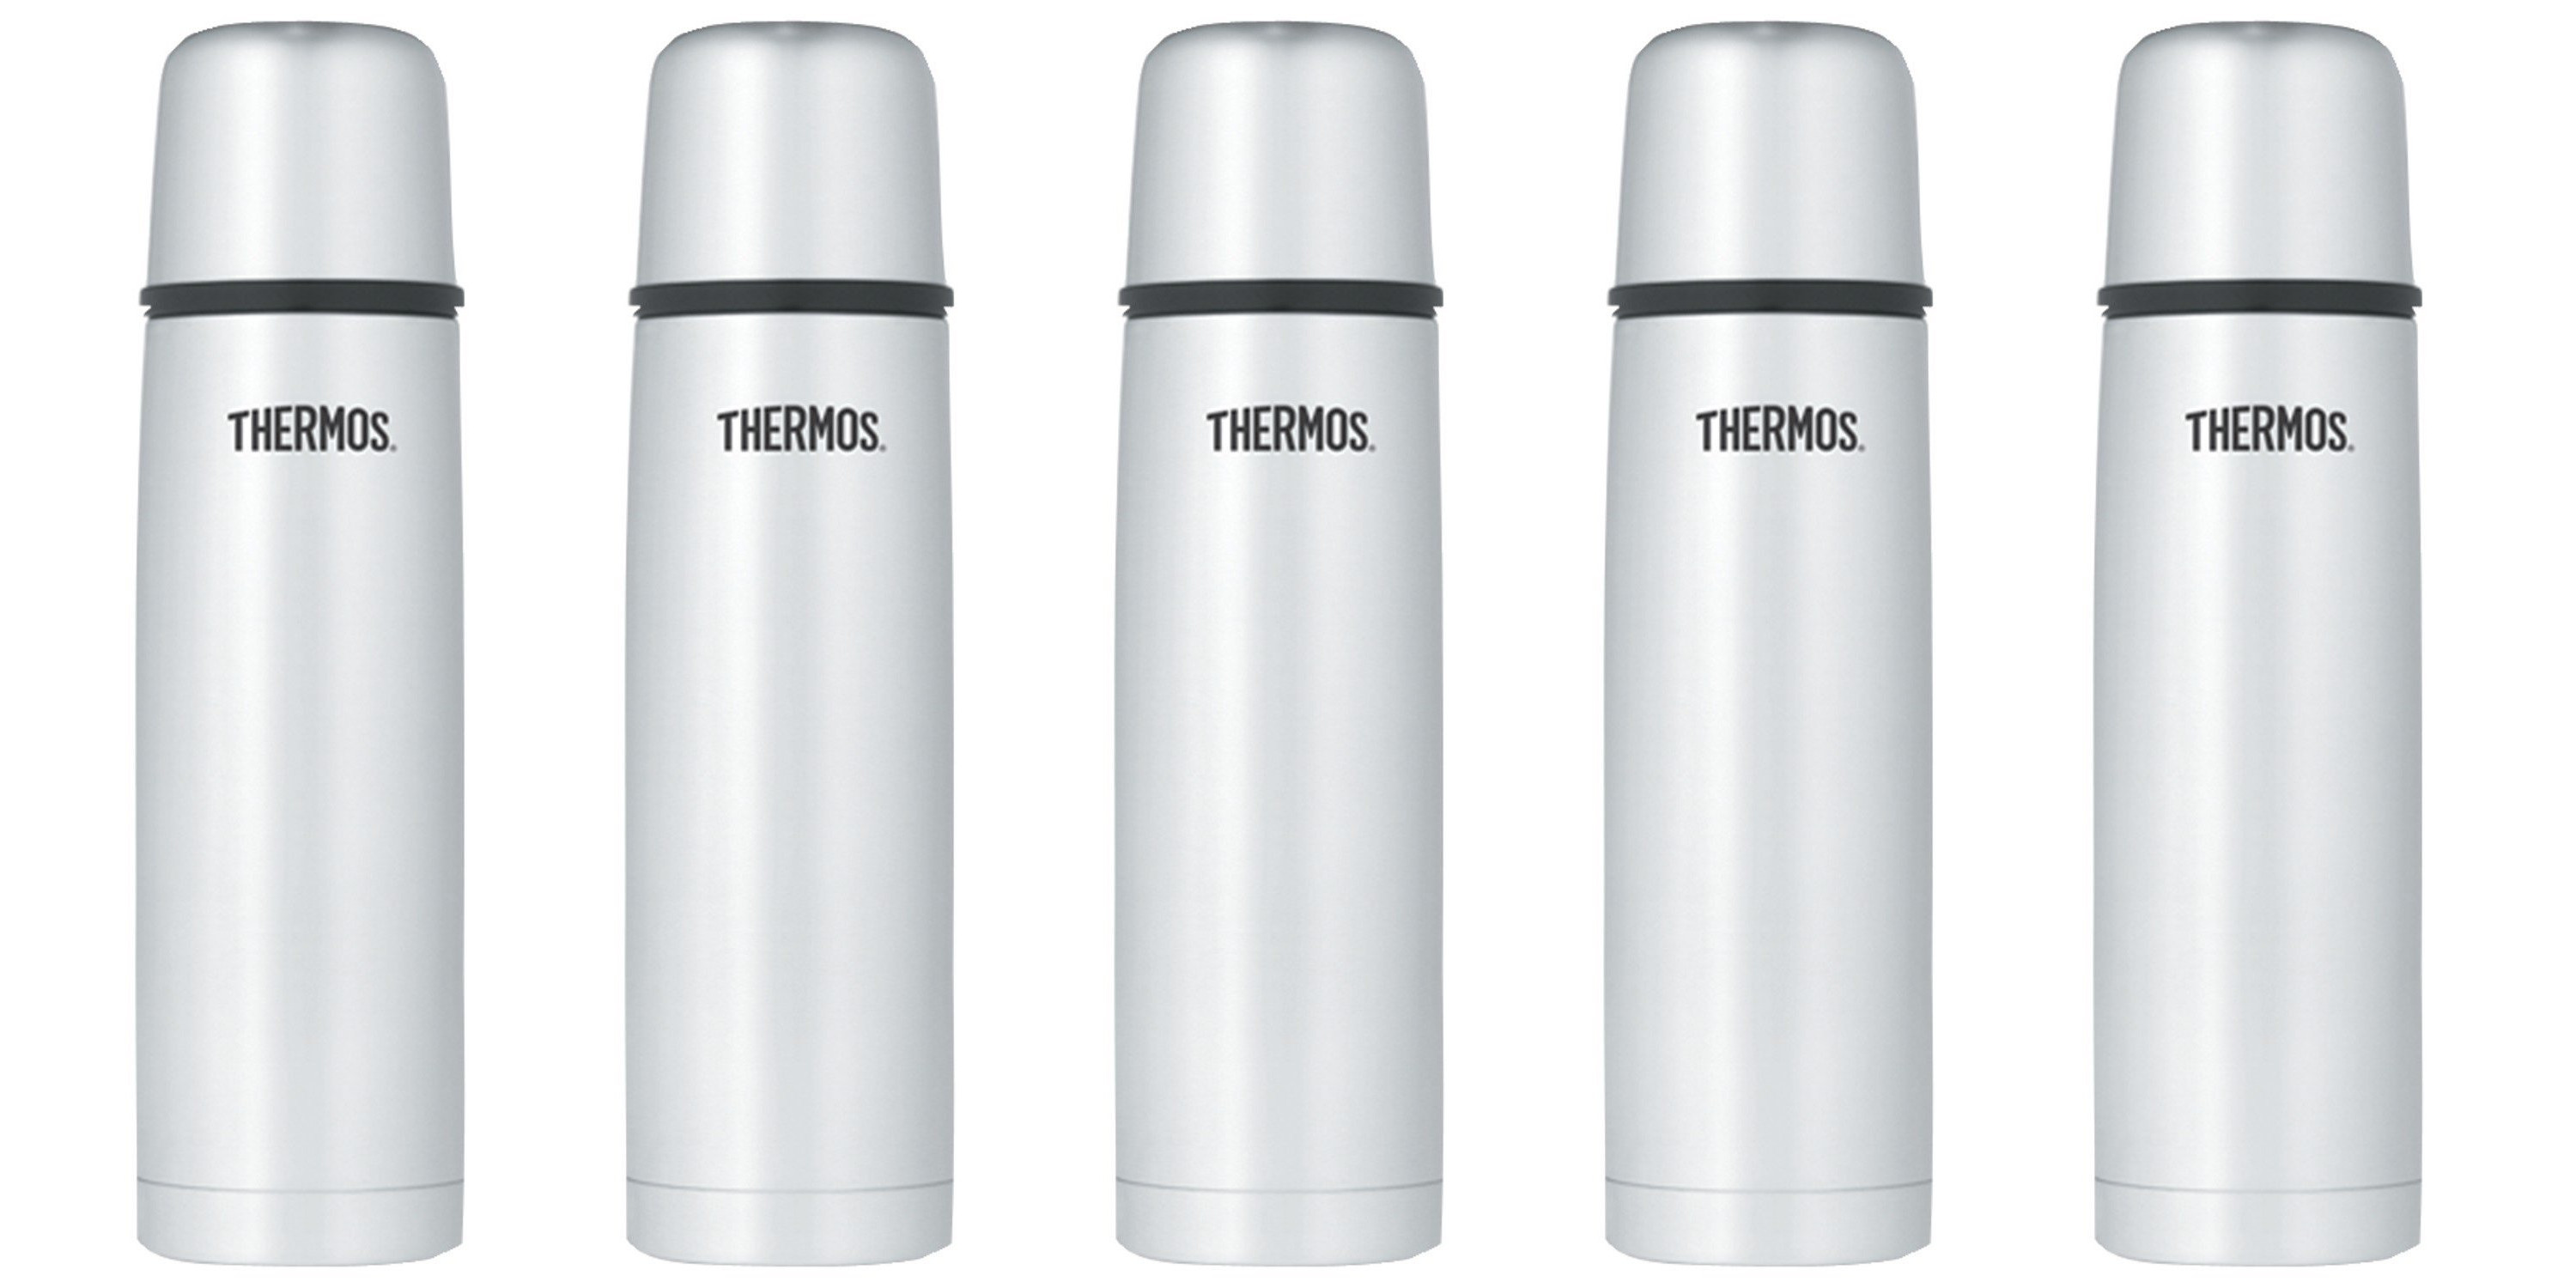 thermos-stainless-steel-bottle